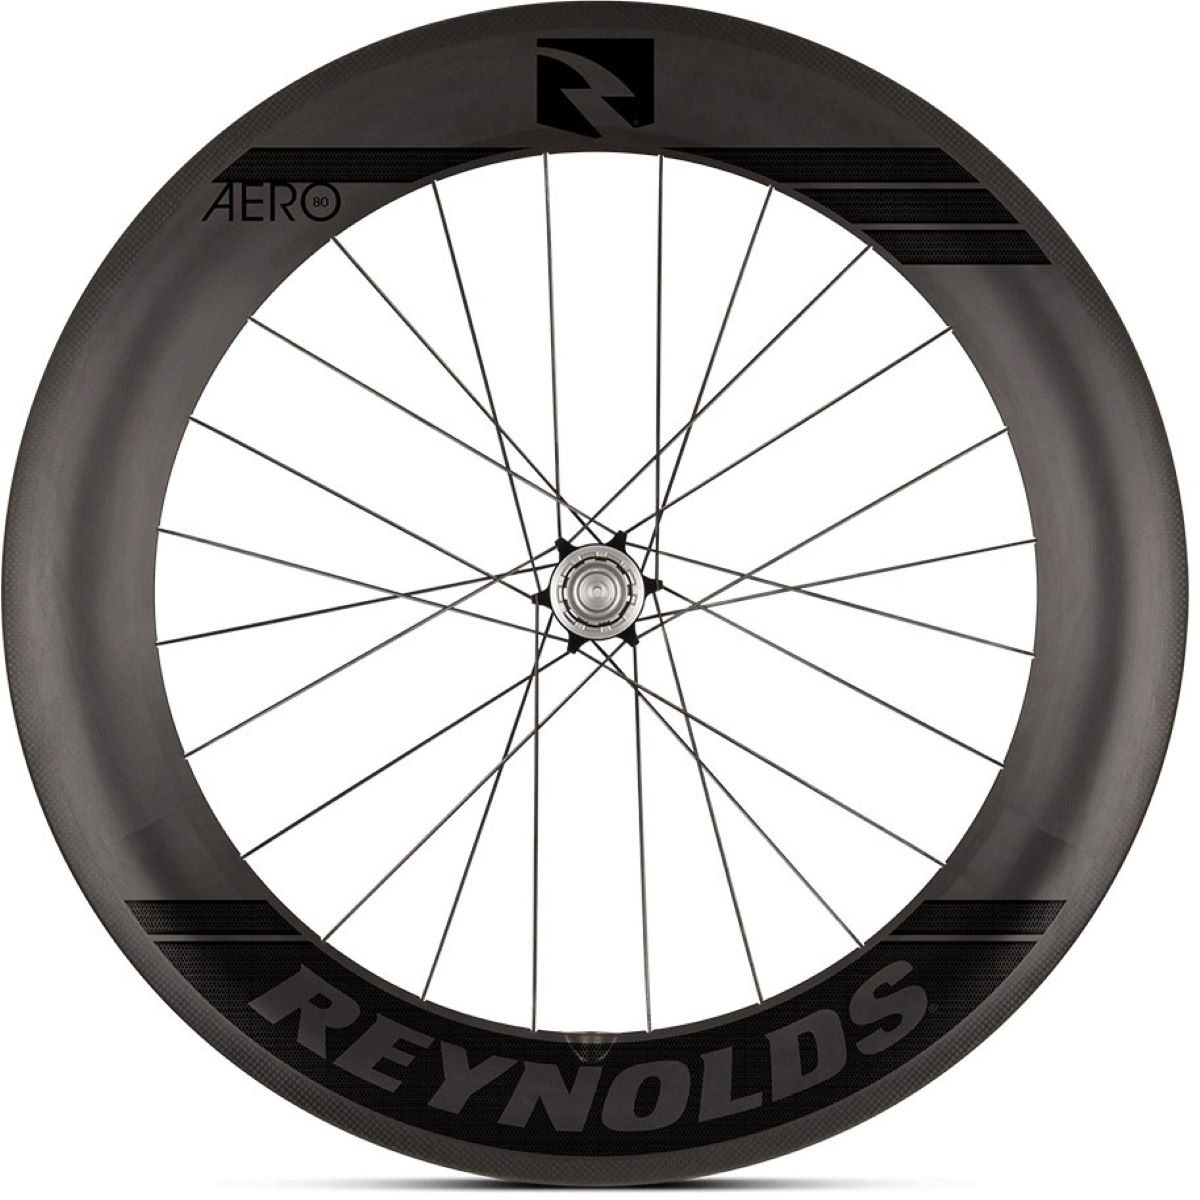 Reynolds Reynolds Aero 80 Rear Carbon Road Wheel   Back Wheels